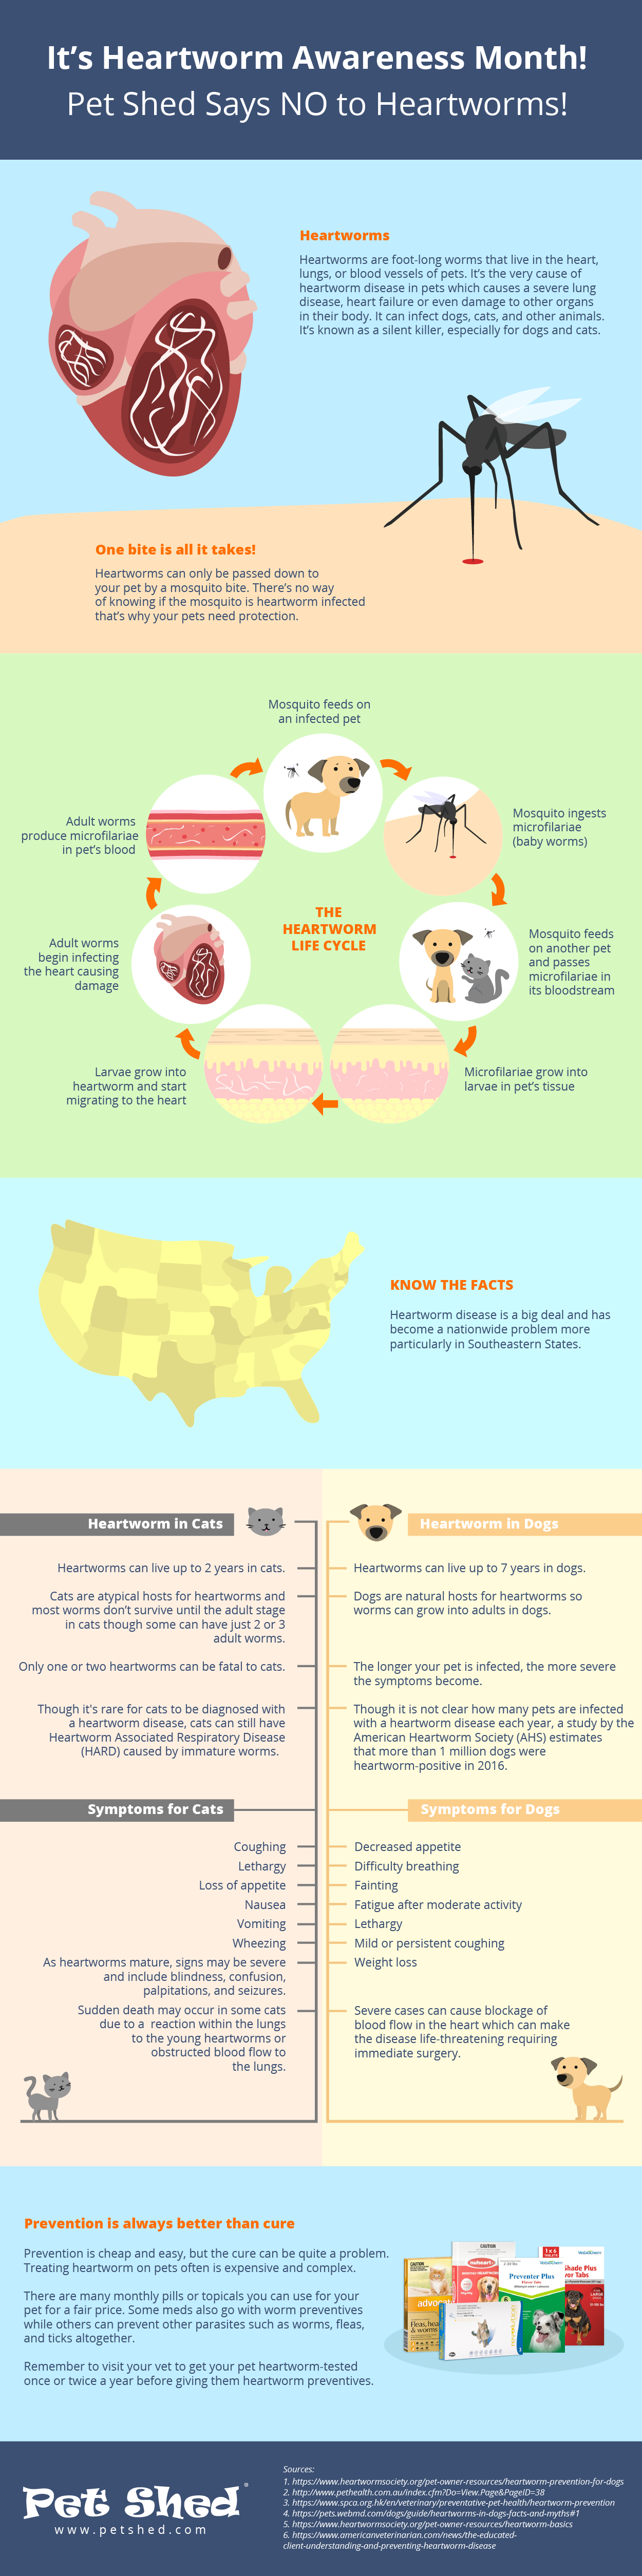 Pet Shed Says NO To Heartworm Disease Infographic